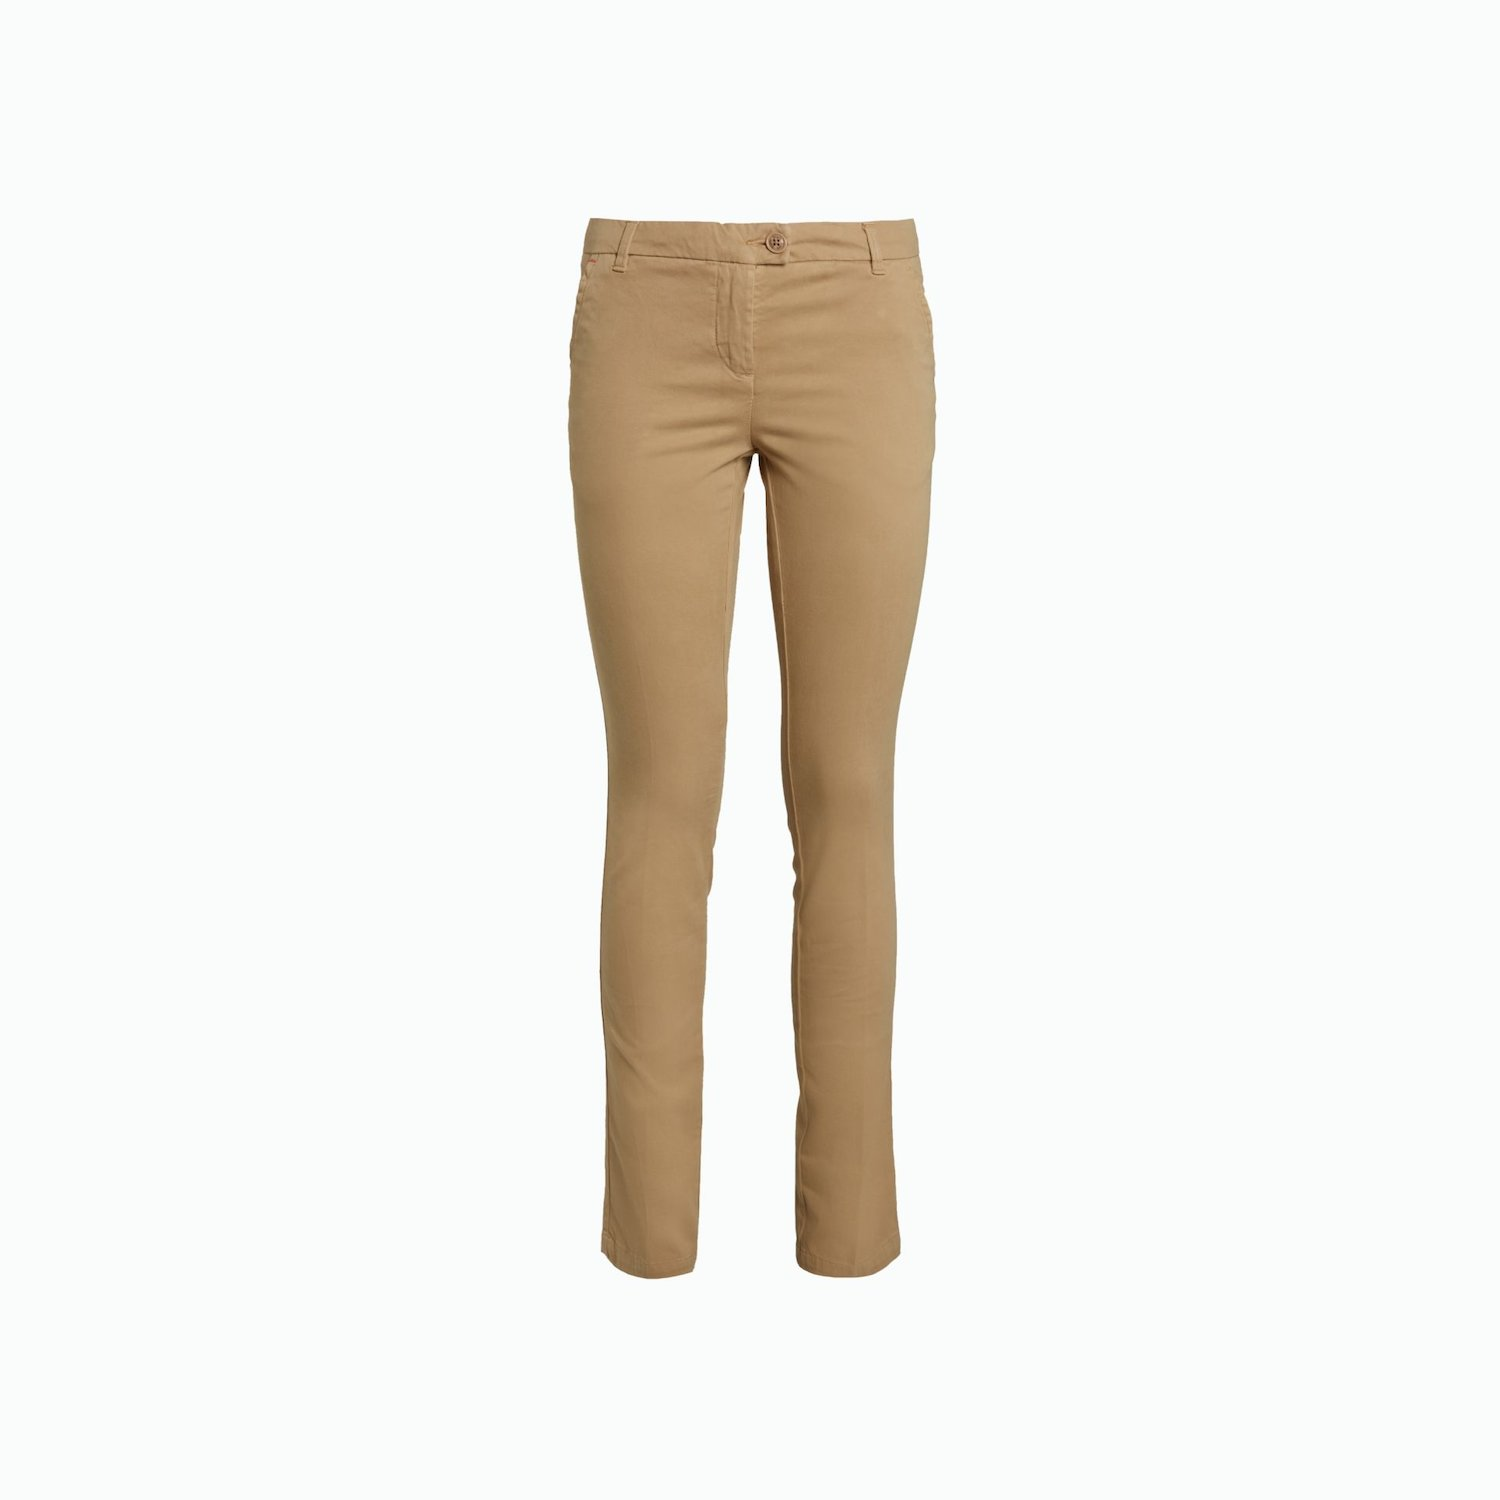 B37 Trousers - Savannah